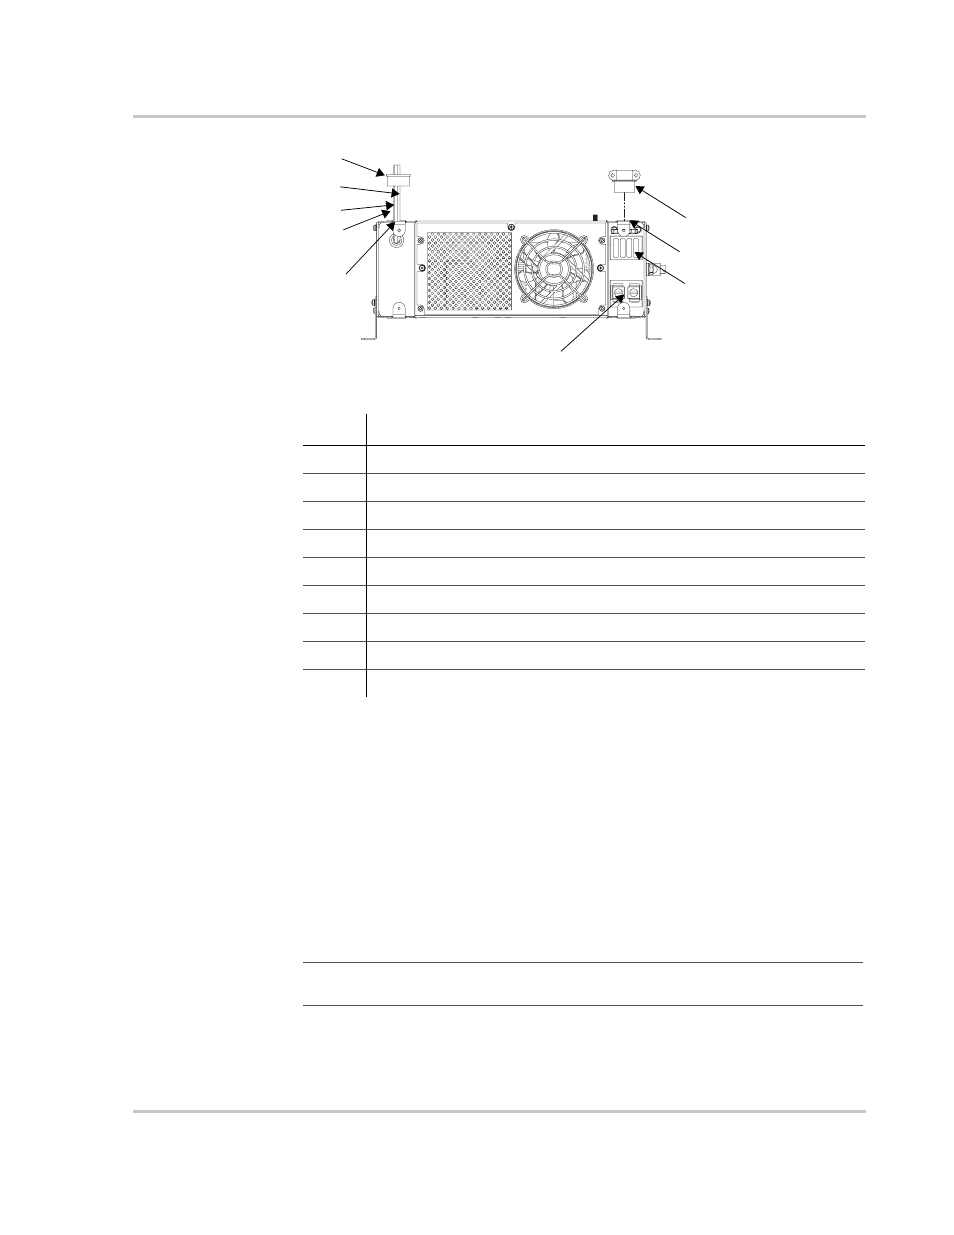 Ac Dc Distribution Panel Xantrex Technology To Wiring Black White Green Converter Xadc User Manual Page 7 26